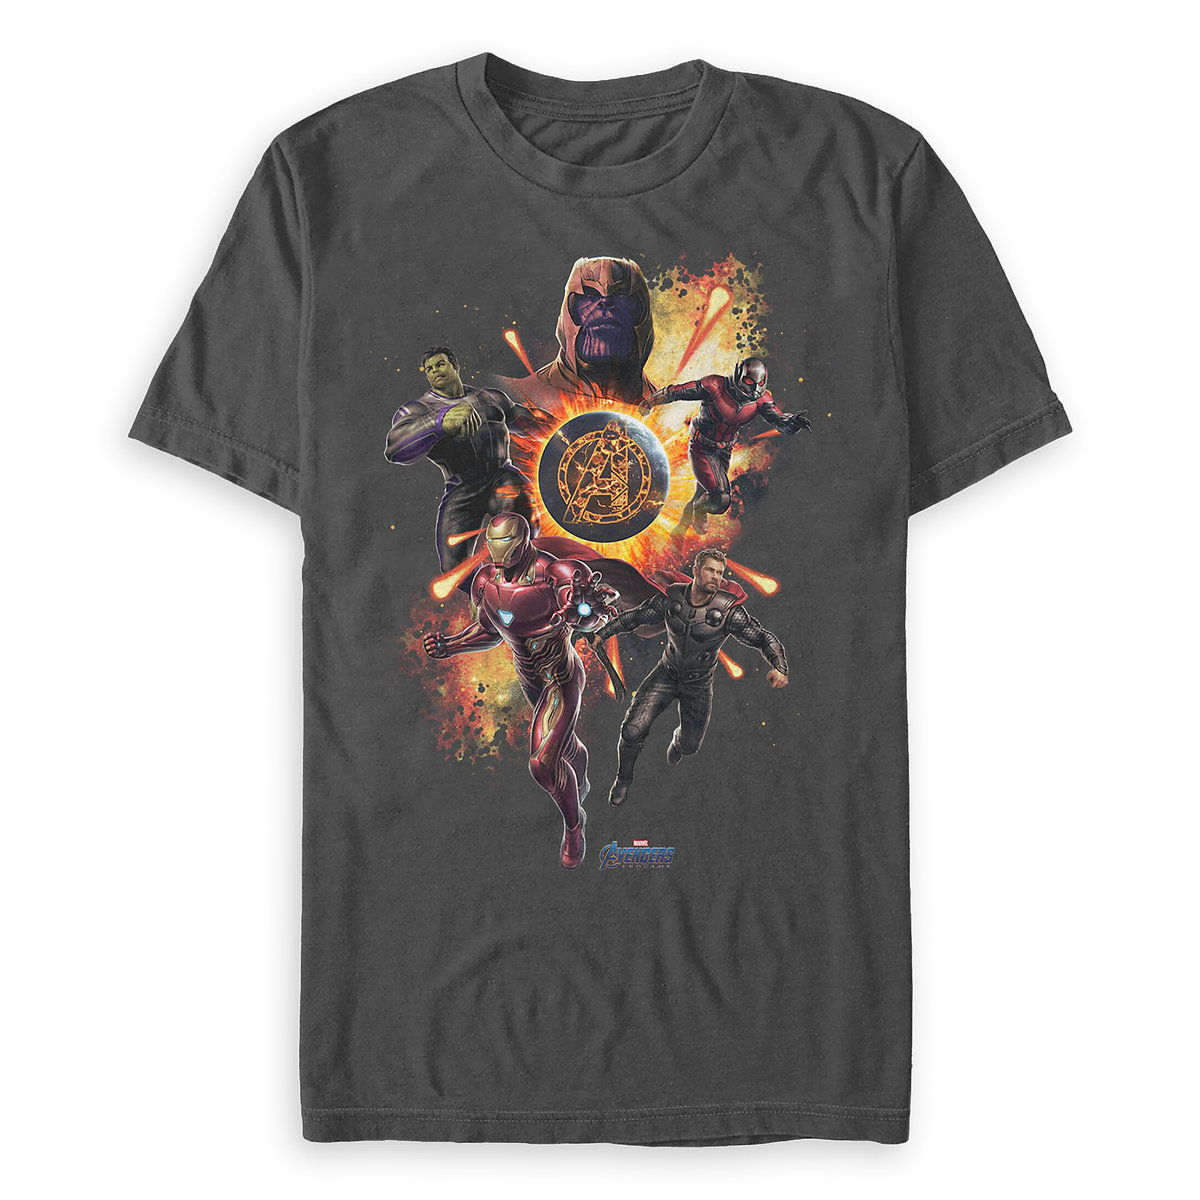 778c26e6 Product Image of Marvel's Avengers: Endgame T-Shirt for Adults # 1